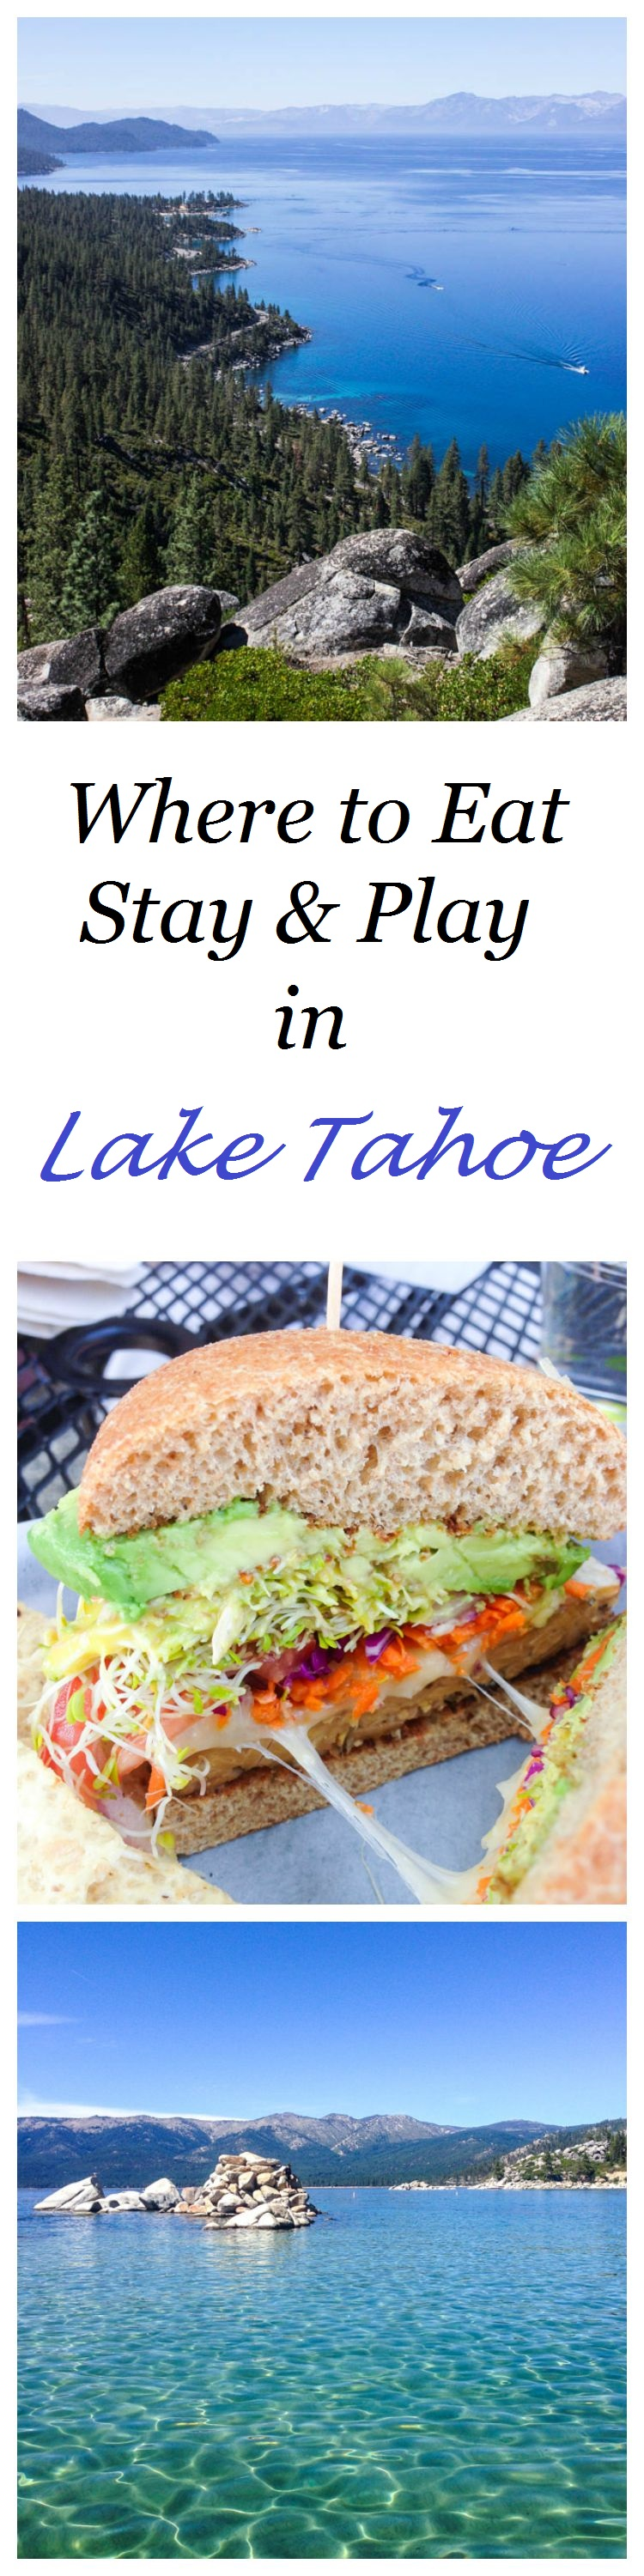 Lake Tahoe Travel Guide - The Best Places to Eat, Play & Stay